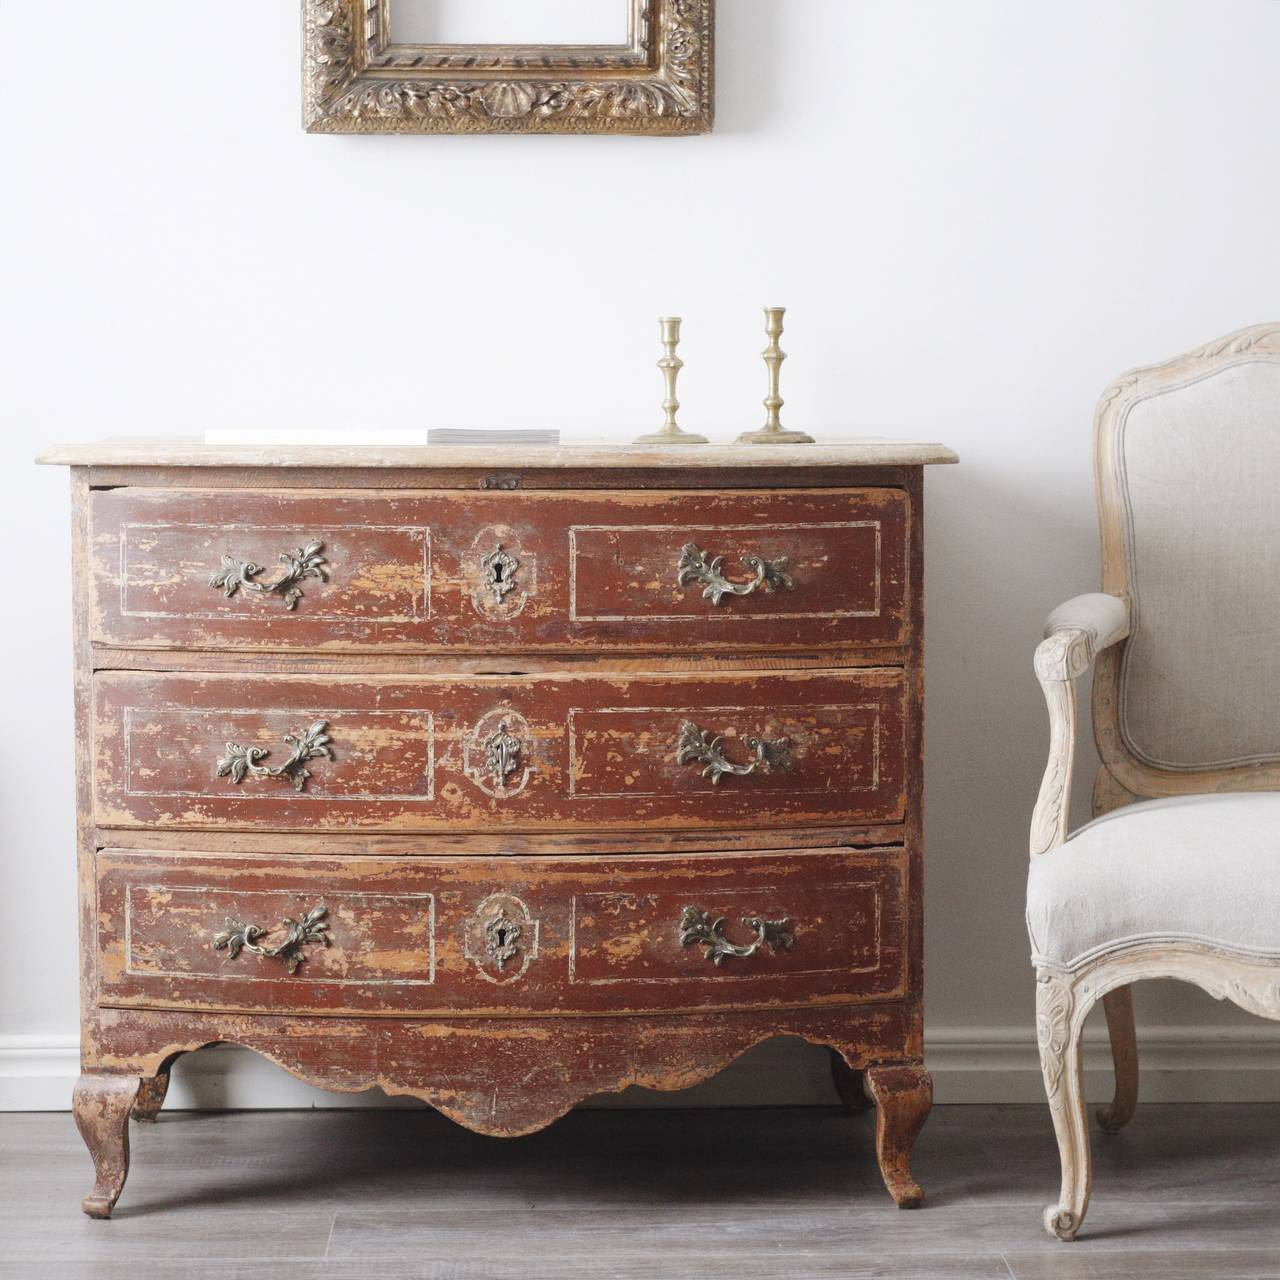 18th century swedish baroque commode for sale at 1stdibs. Black Bedroom Furniture Sets. Home Design Ideas